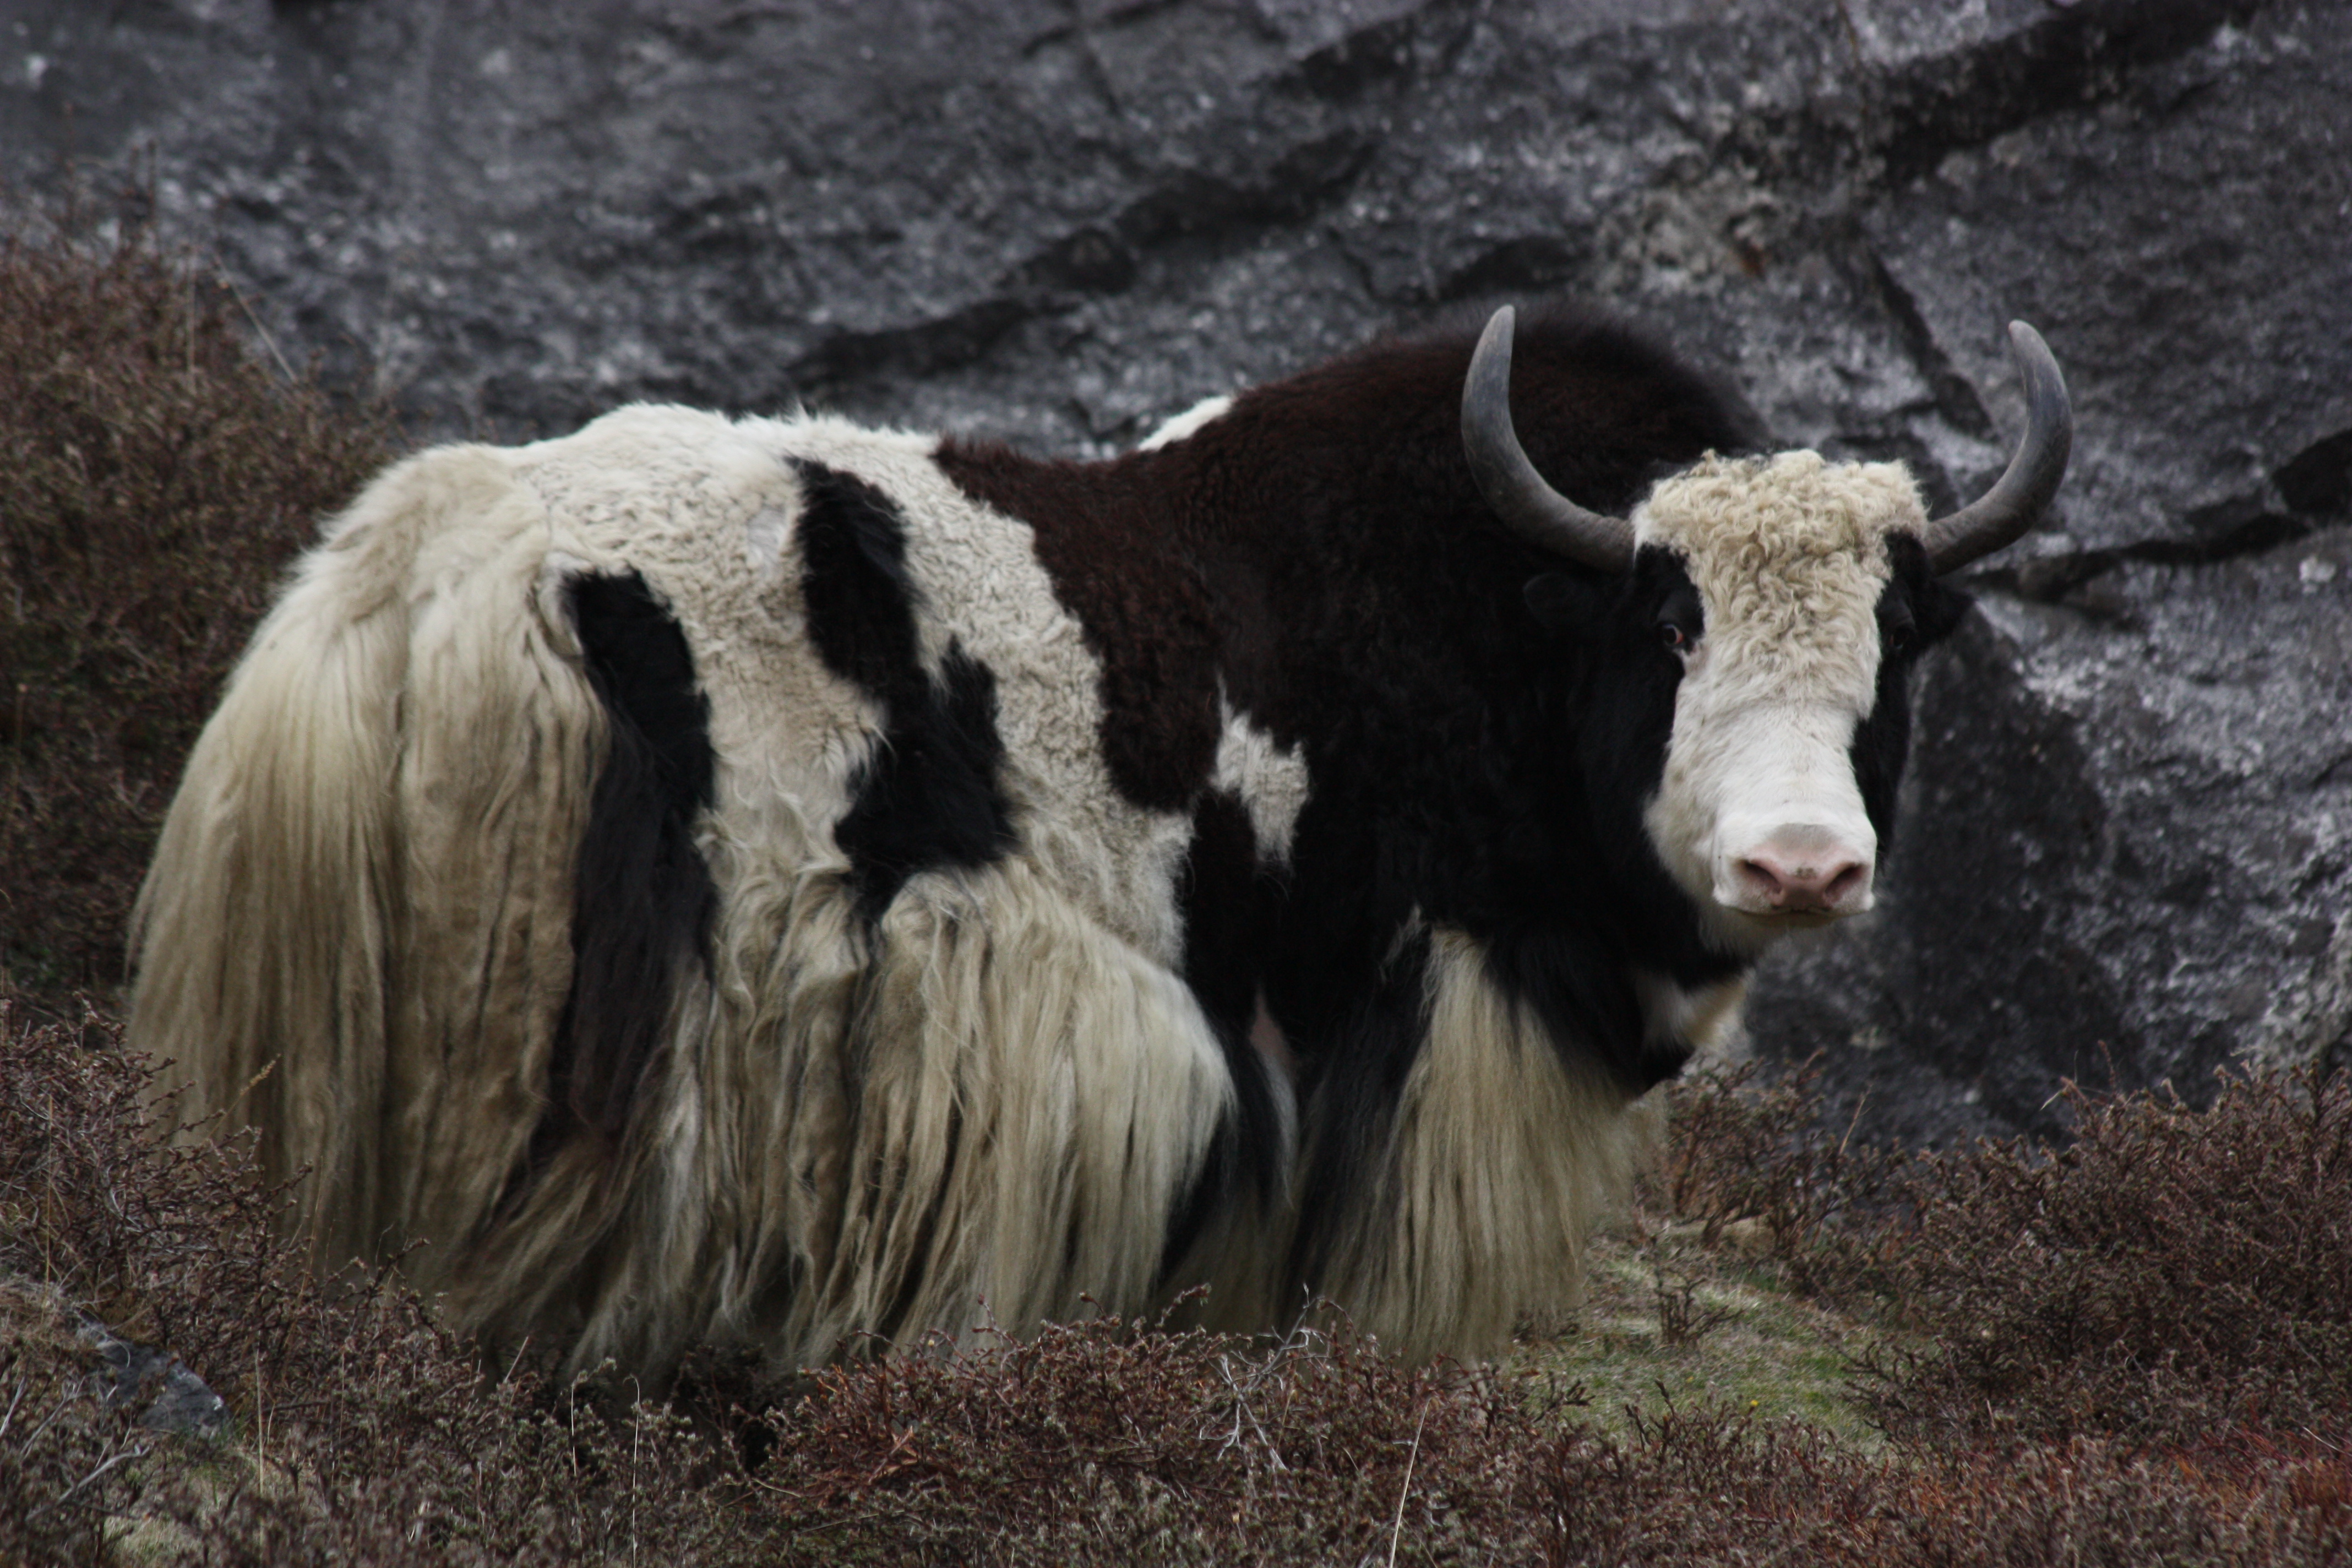 ... .com/Yak-Facts-Info-About-Yaks/the-yak-tastiks-Yak-links.html